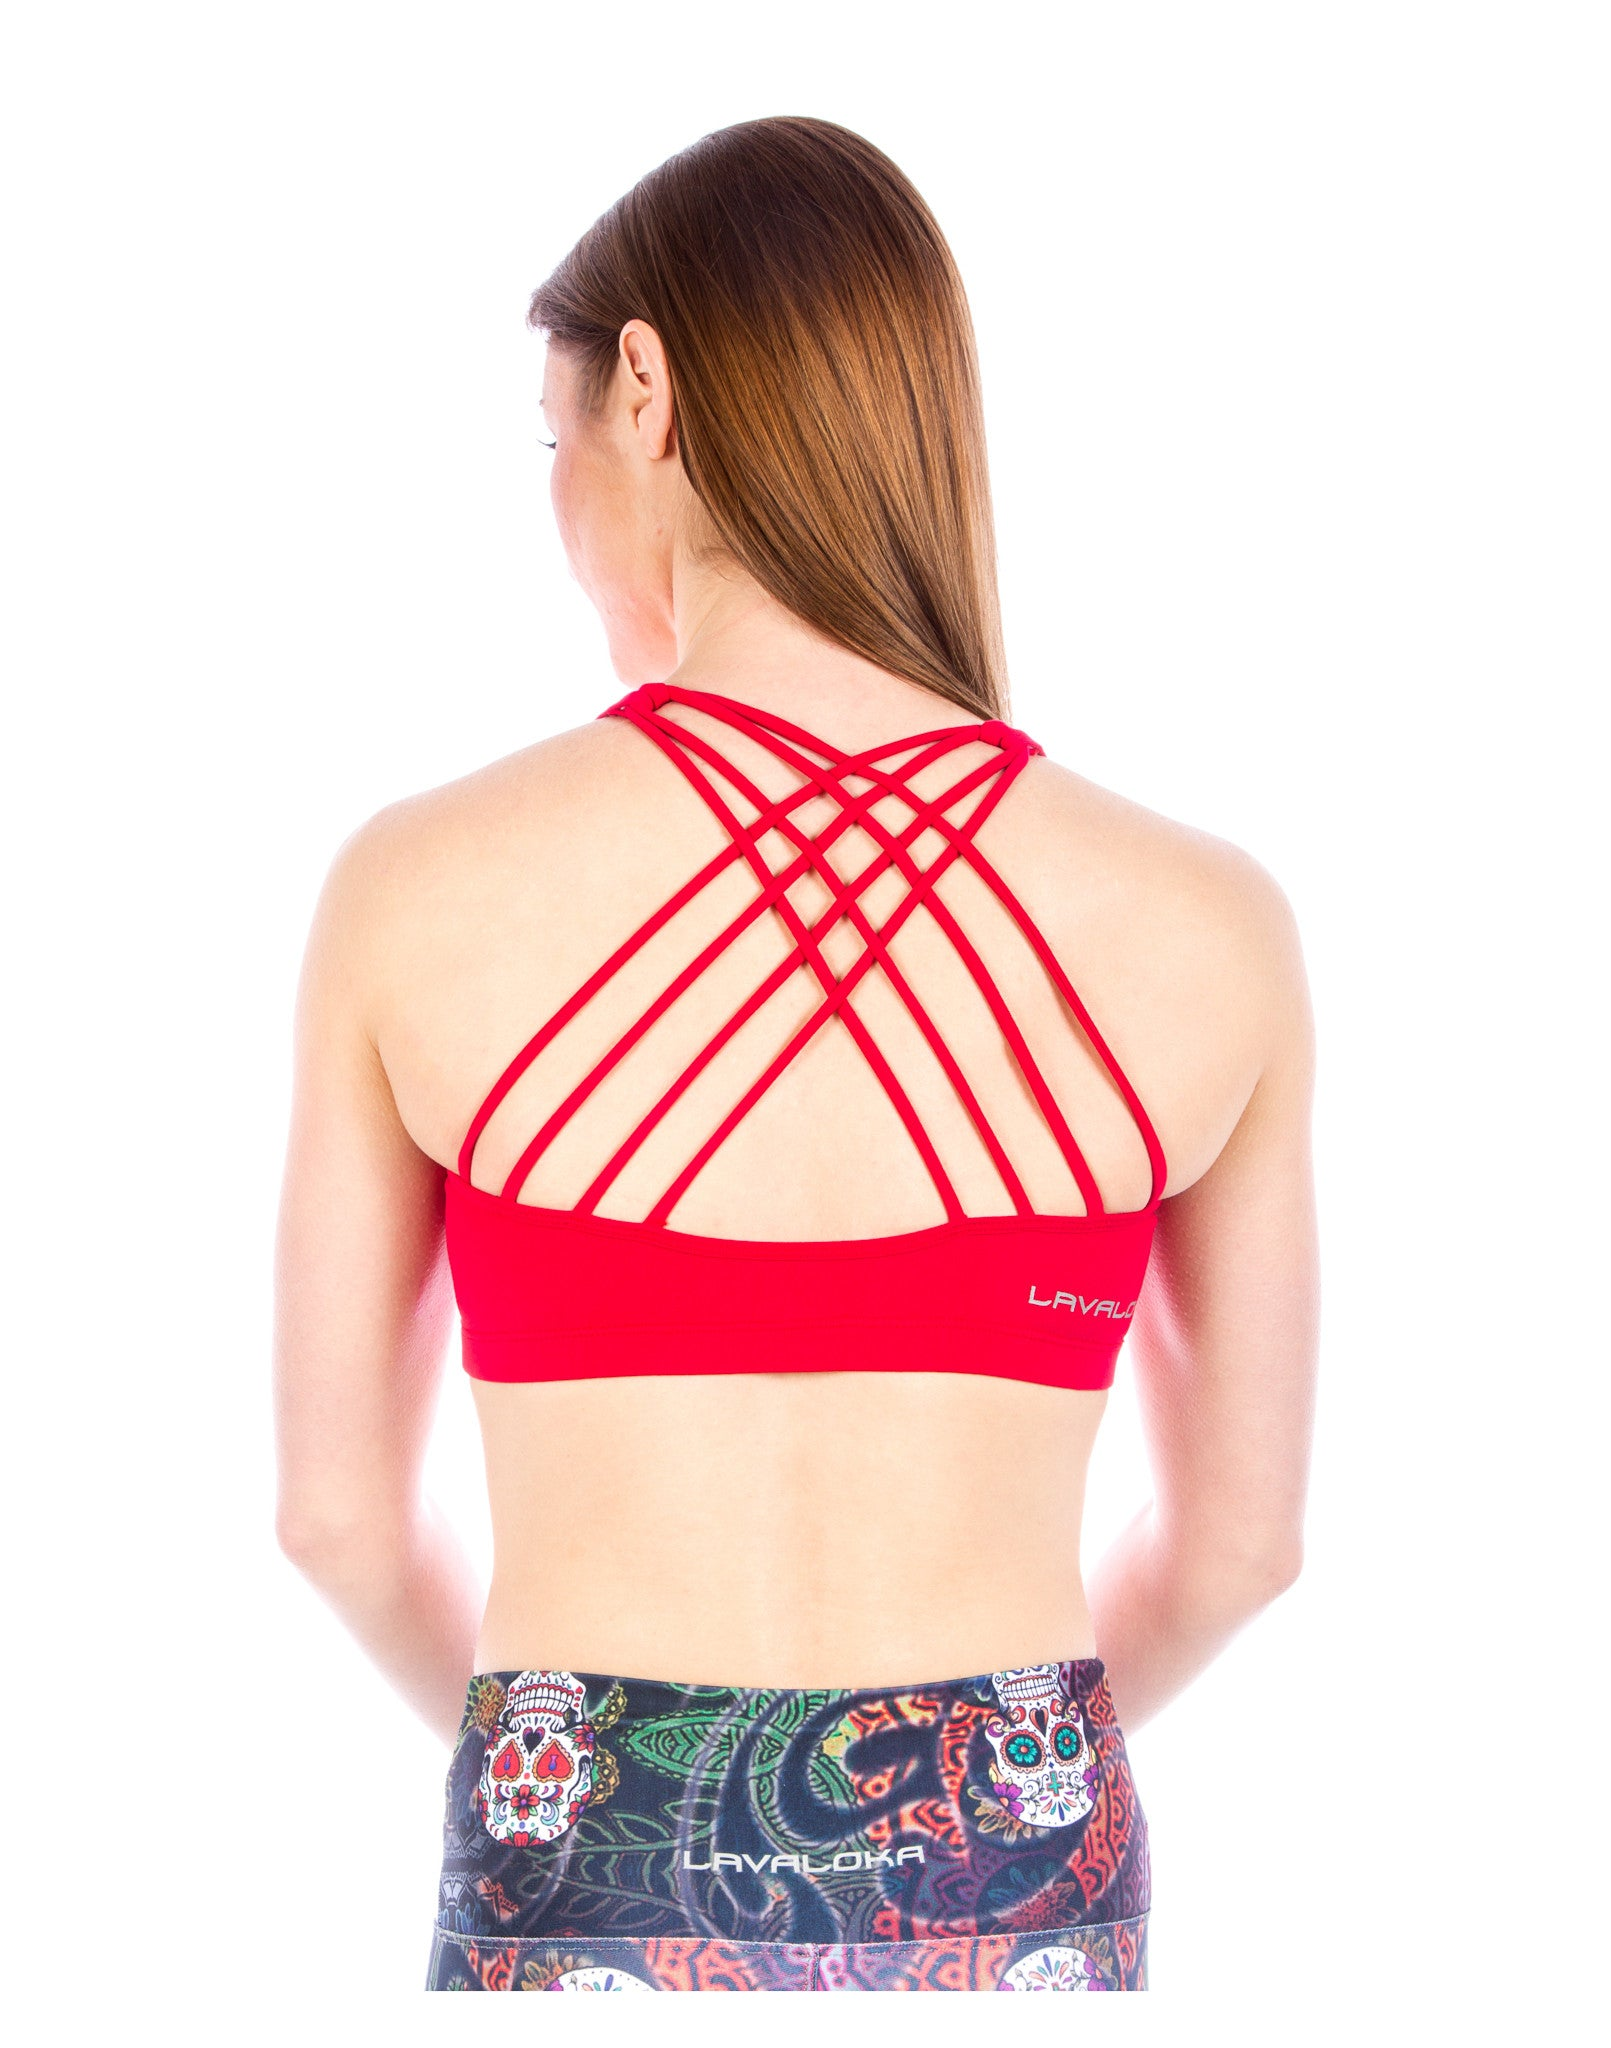 Sports Bra - Samantha Sports Bra LavaLoka - Red - buy it in every color